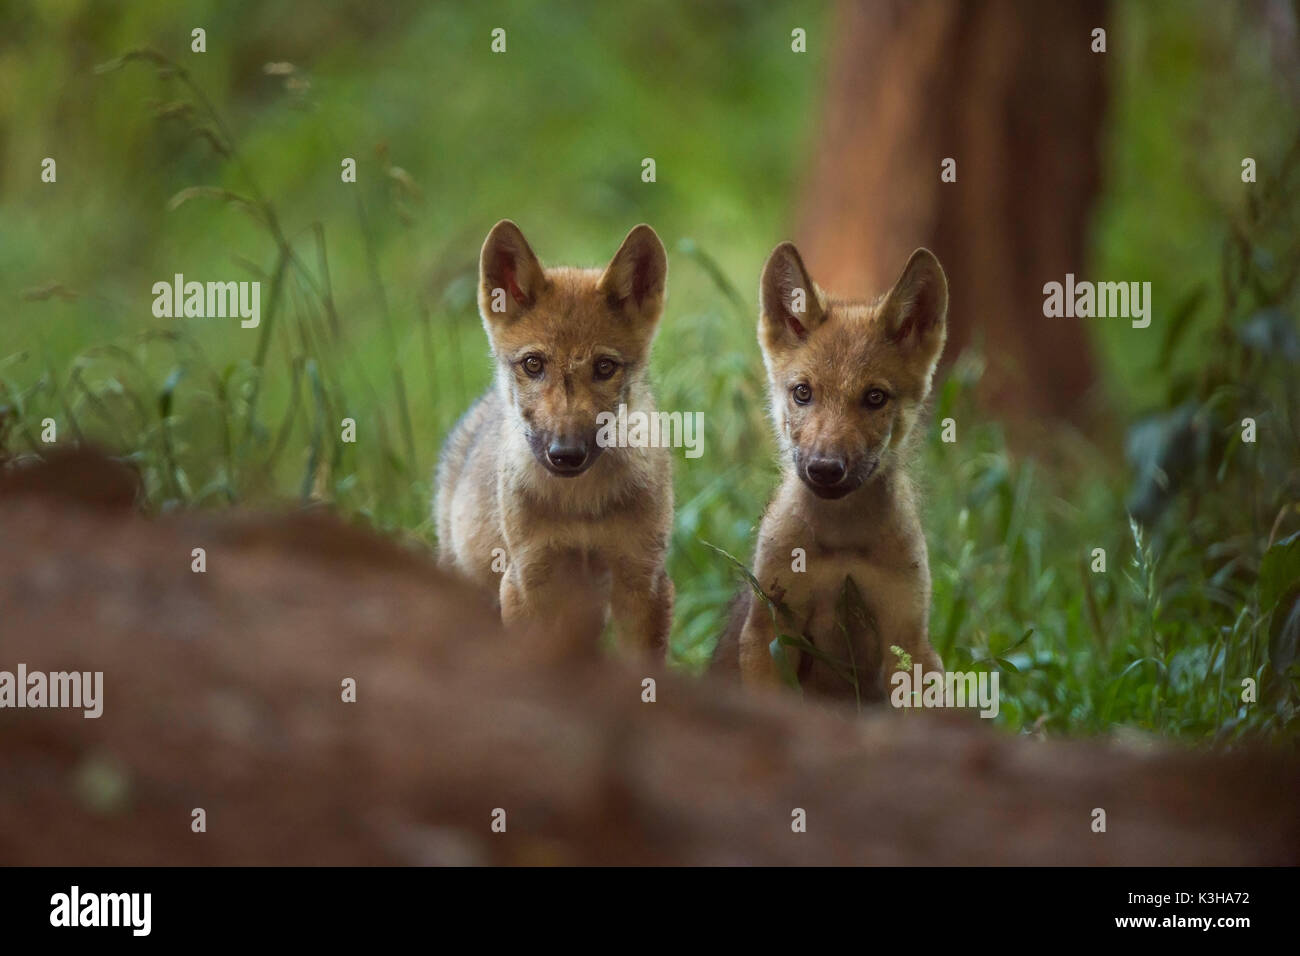 European Gray Wolf, Canis lupus lupus, two Pups, Germany - Stock Image